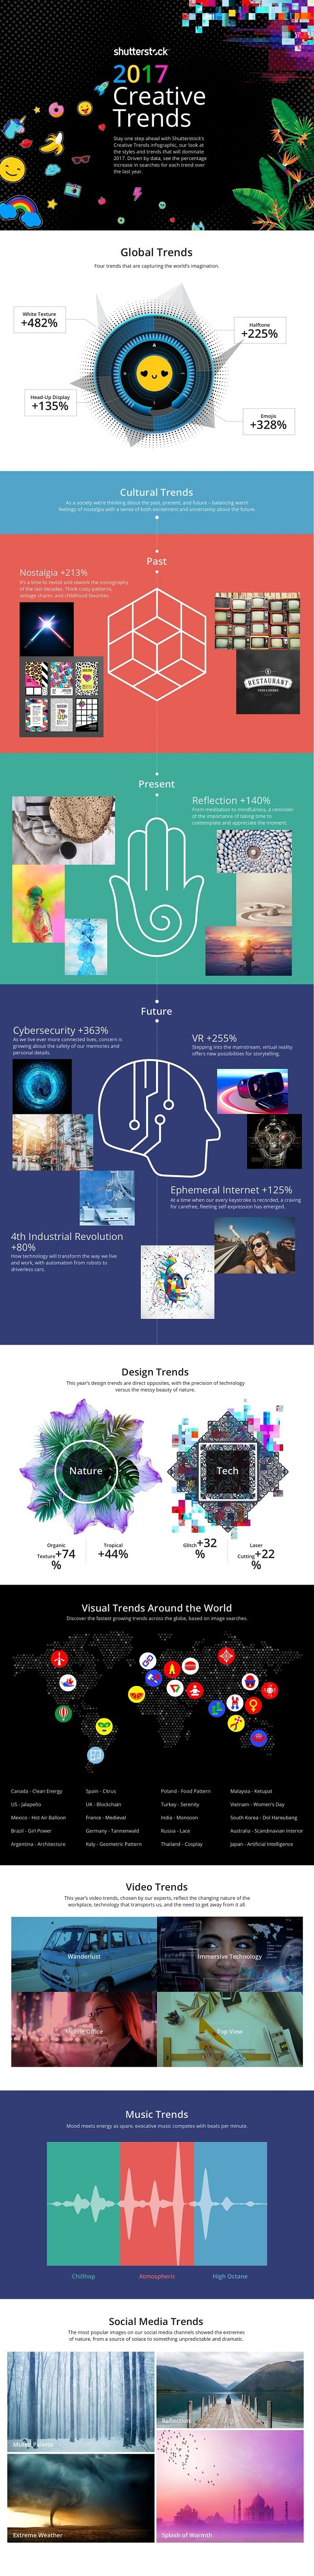 Explore Shutterstock's Global Creative Trends That Will Shape 2017 #Infographic